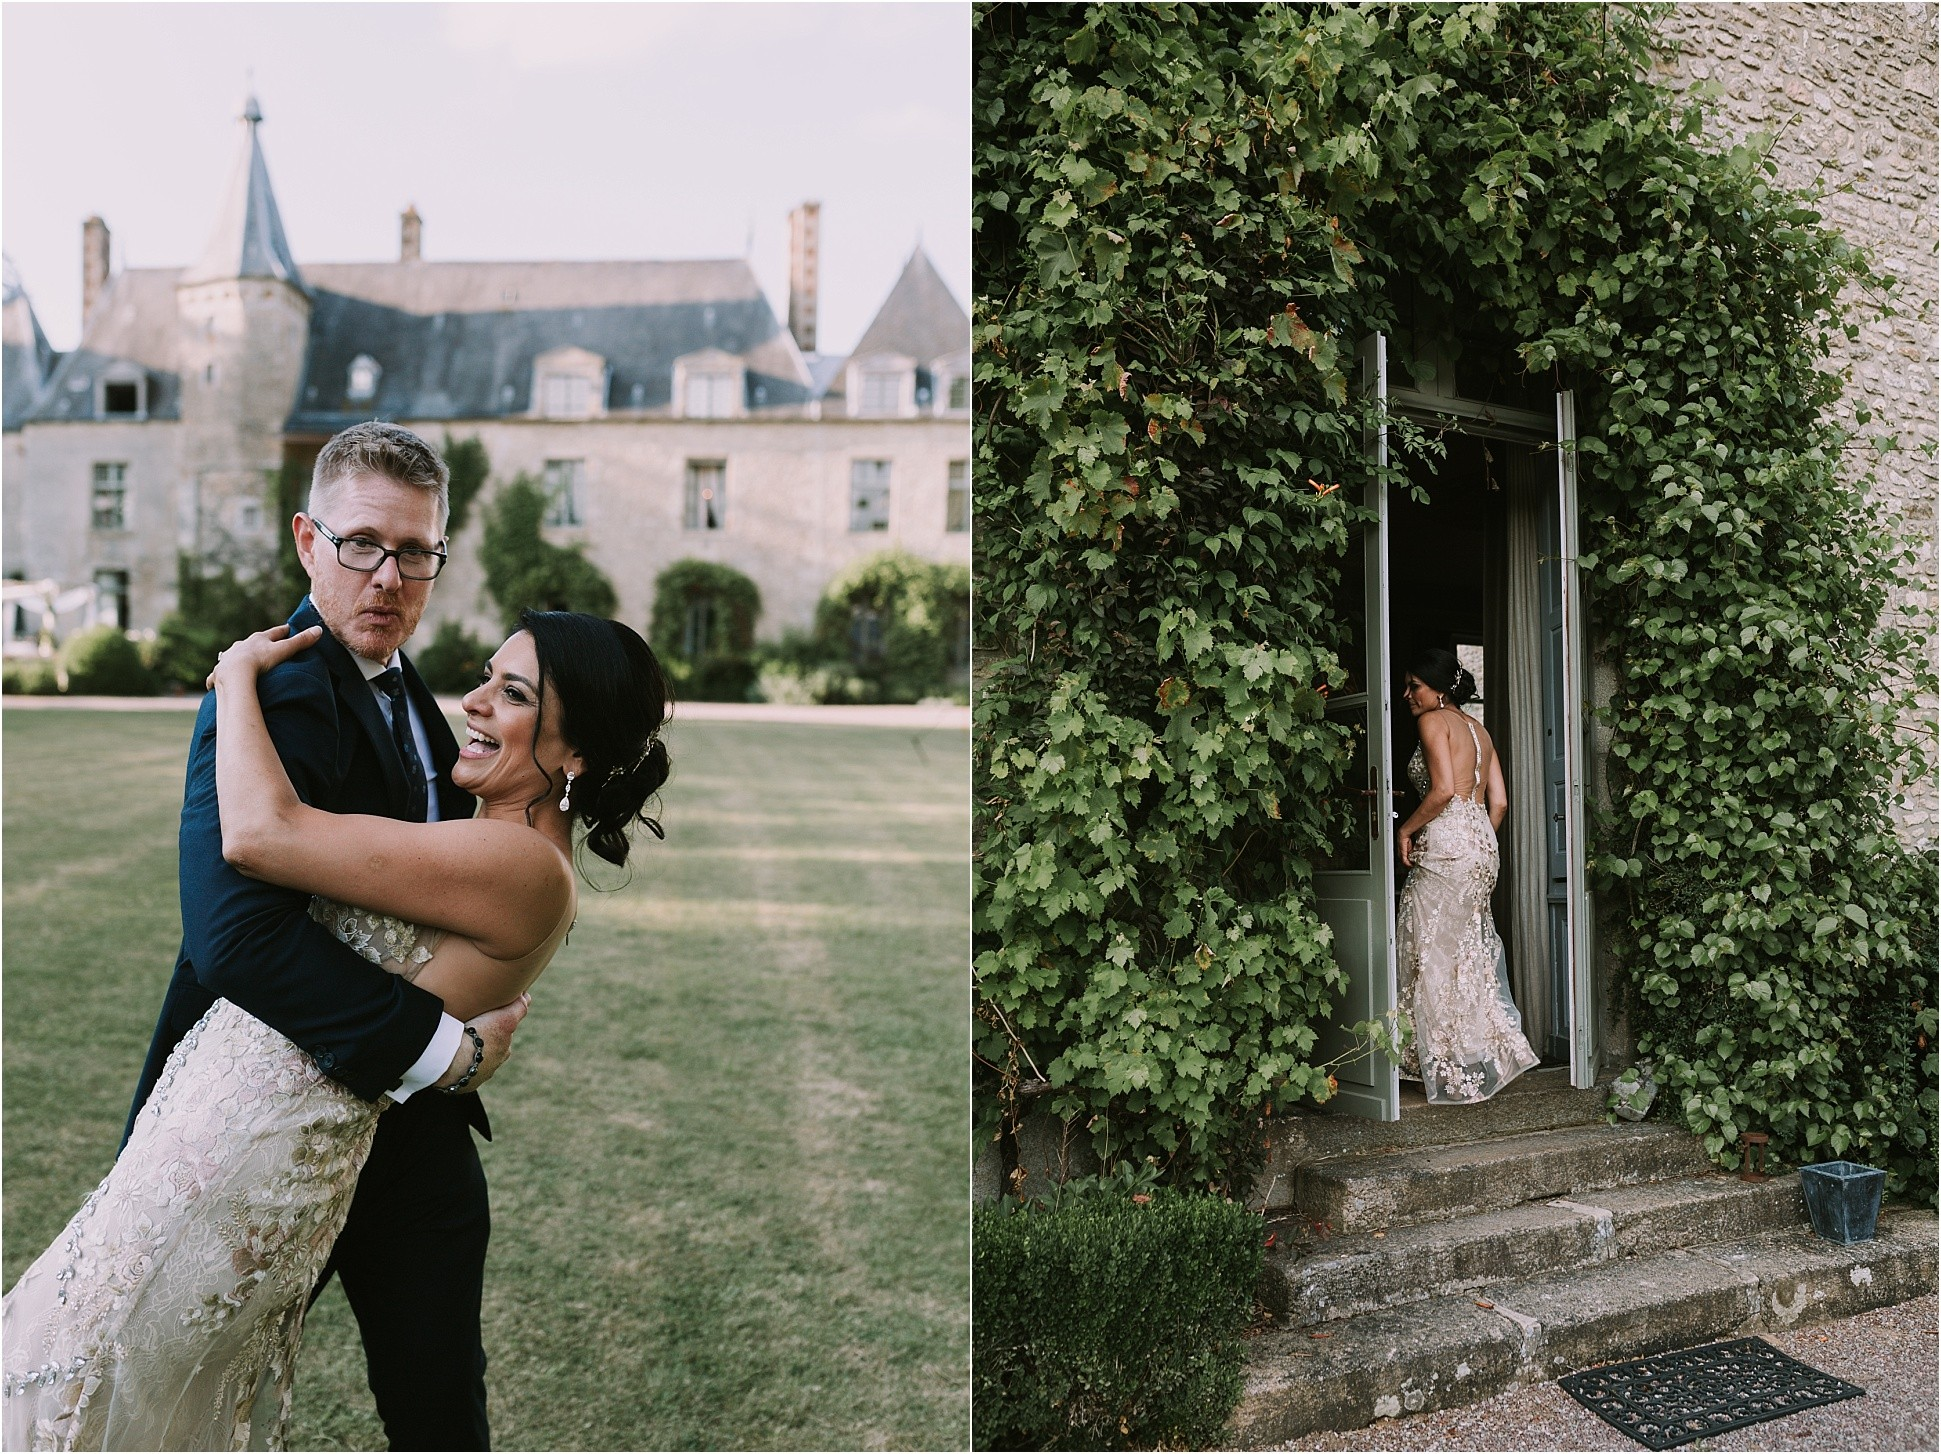 Kateryna-photos-photographe-mariage-chateau-st-paterne-mayenne-normandie_0211.jpg